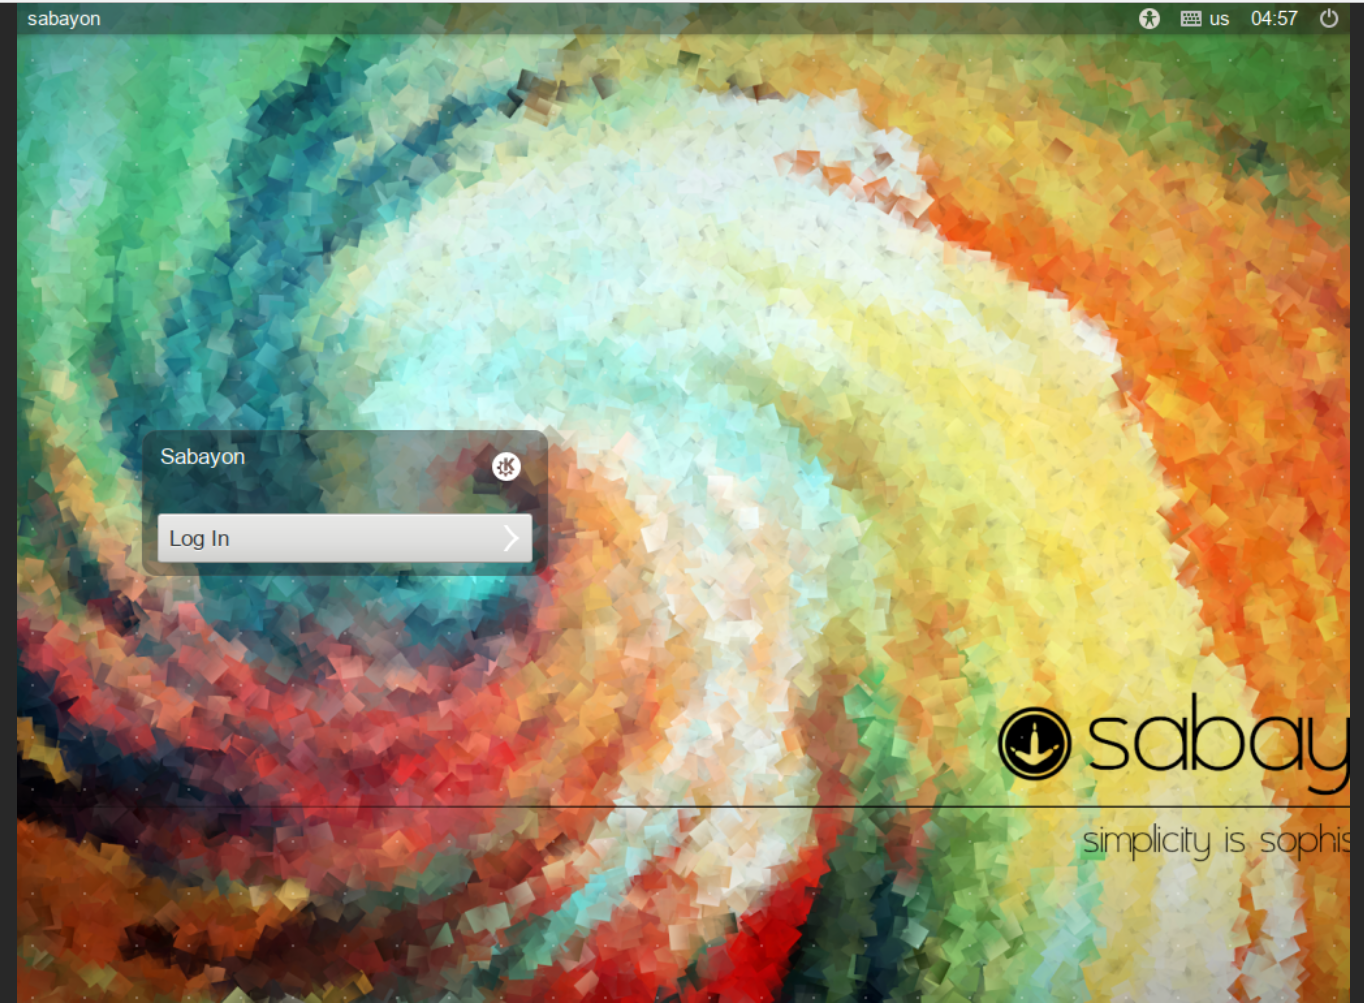 missing icons and no DE switching · Issue #132 · linuxmint